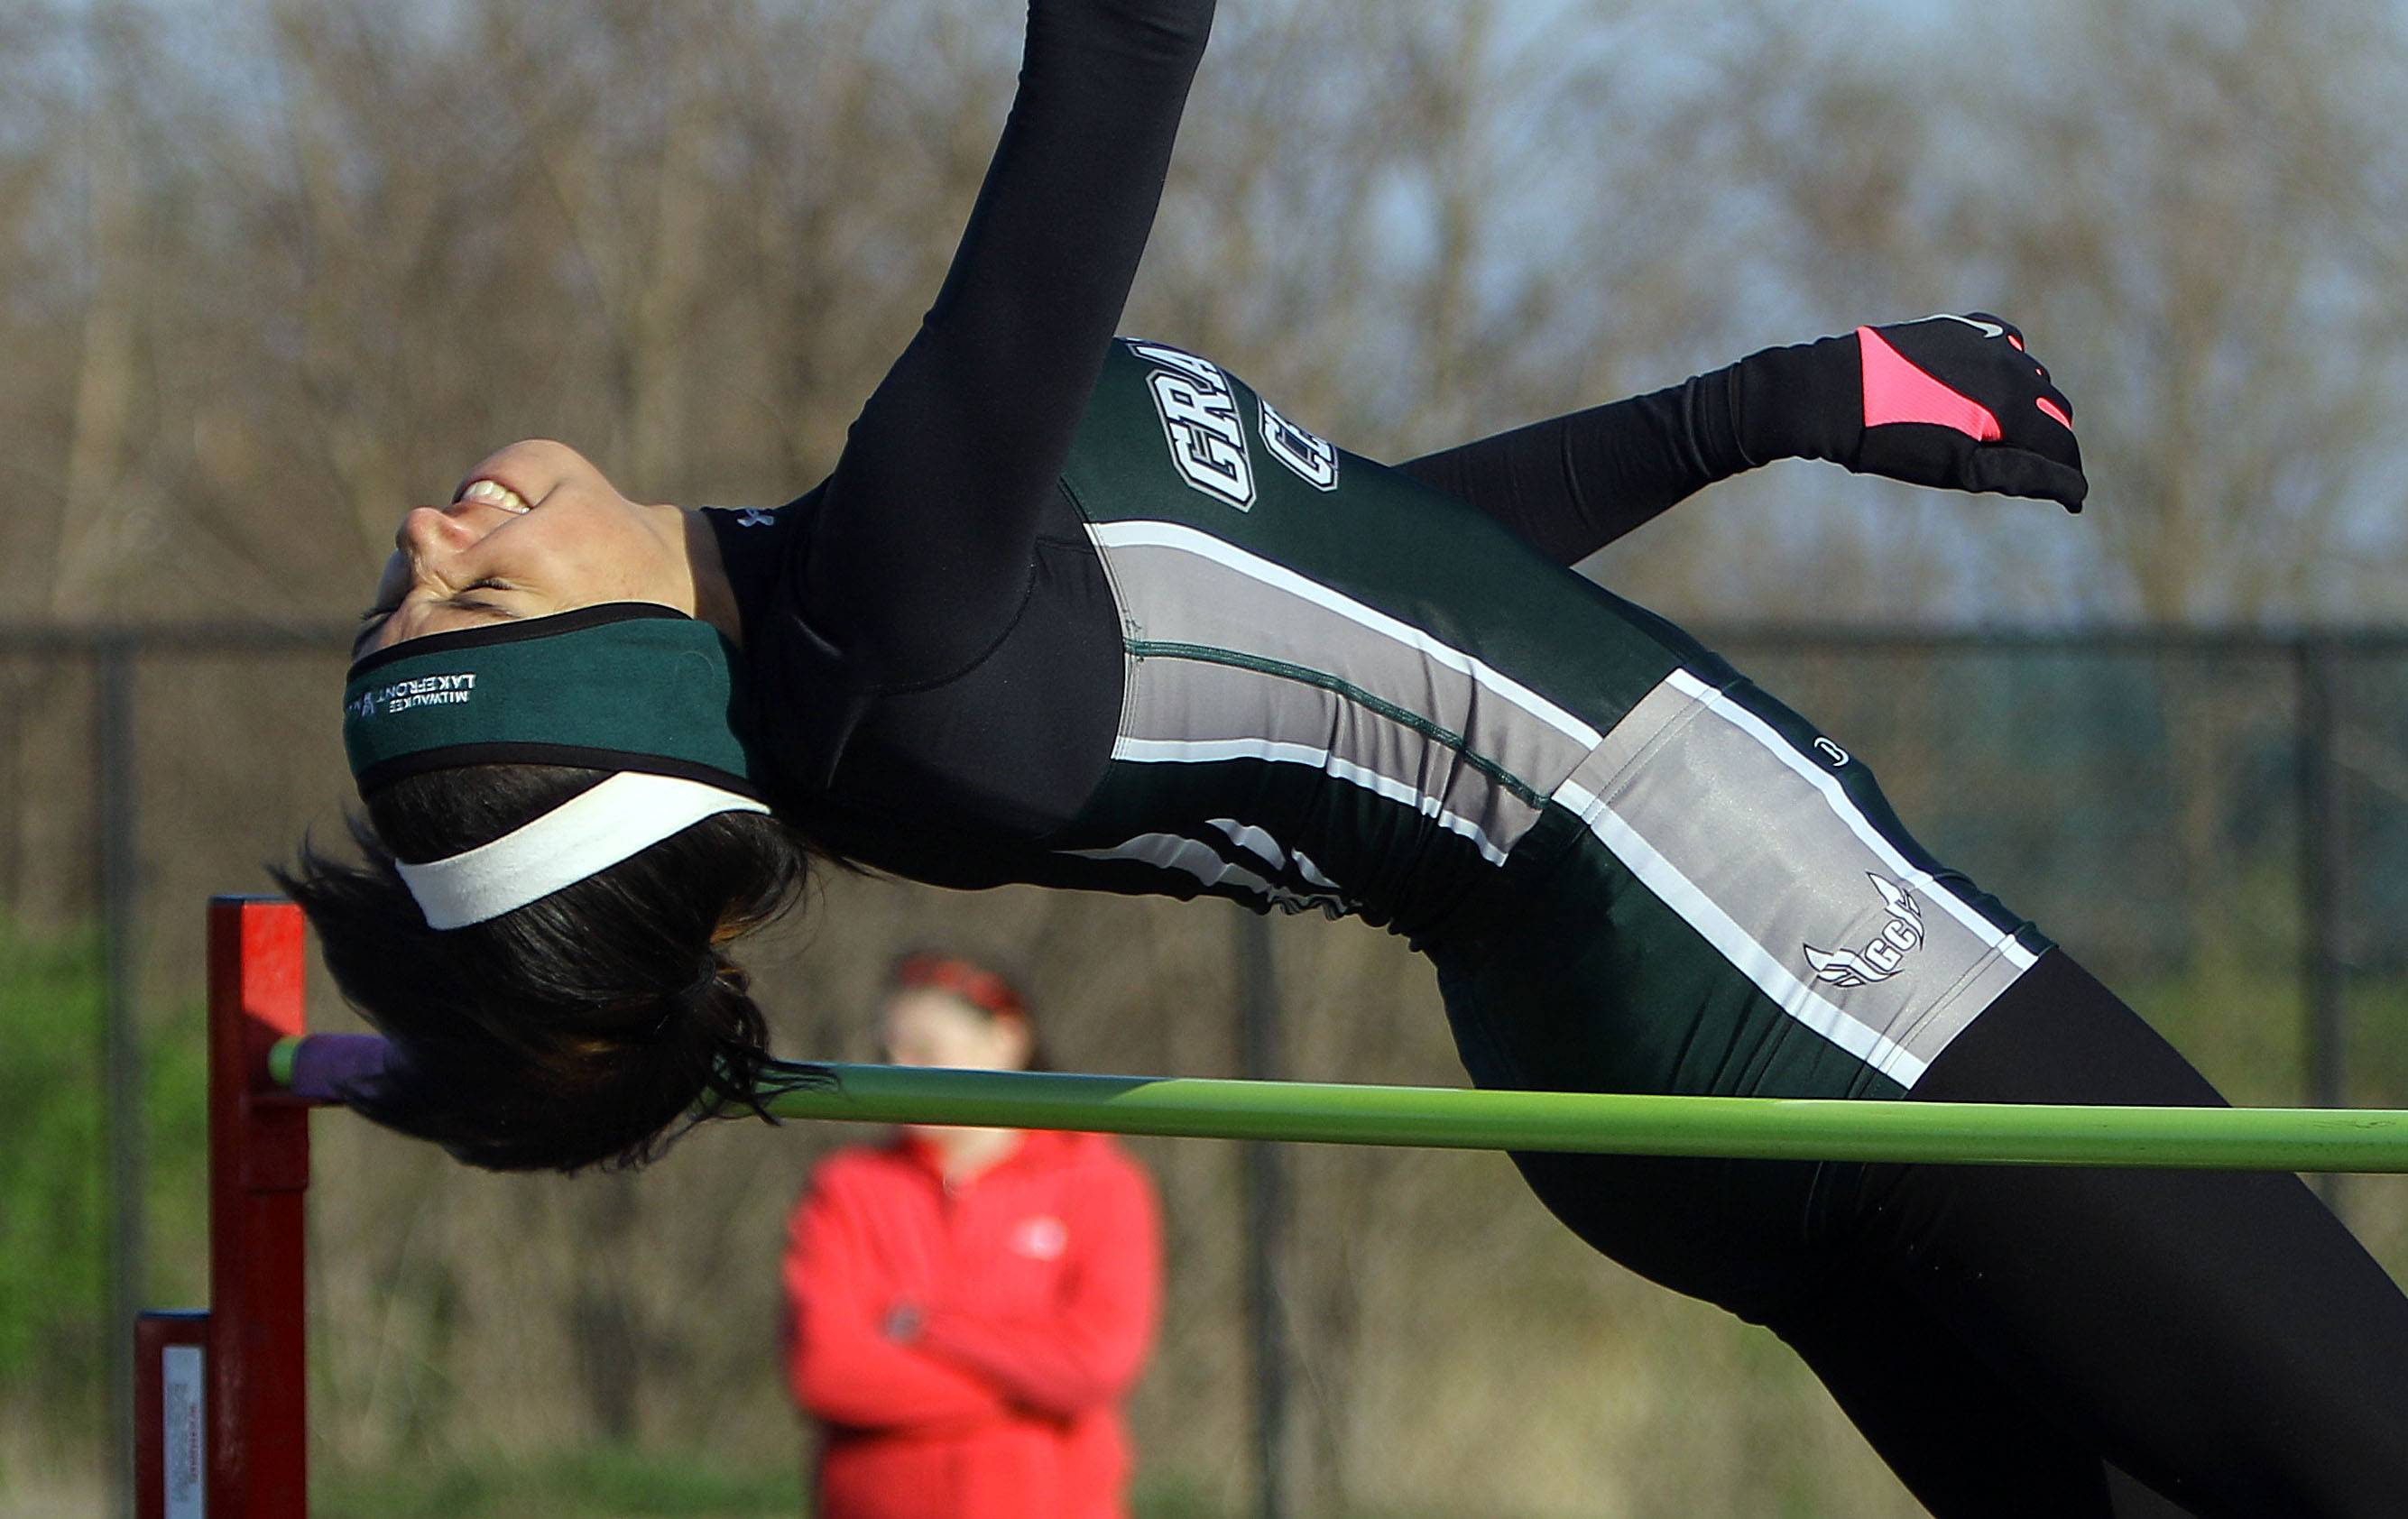 Grayslake Central's Ania Barnes competes in the high jump during the Lake County meet Friday at Grayslake North High School.